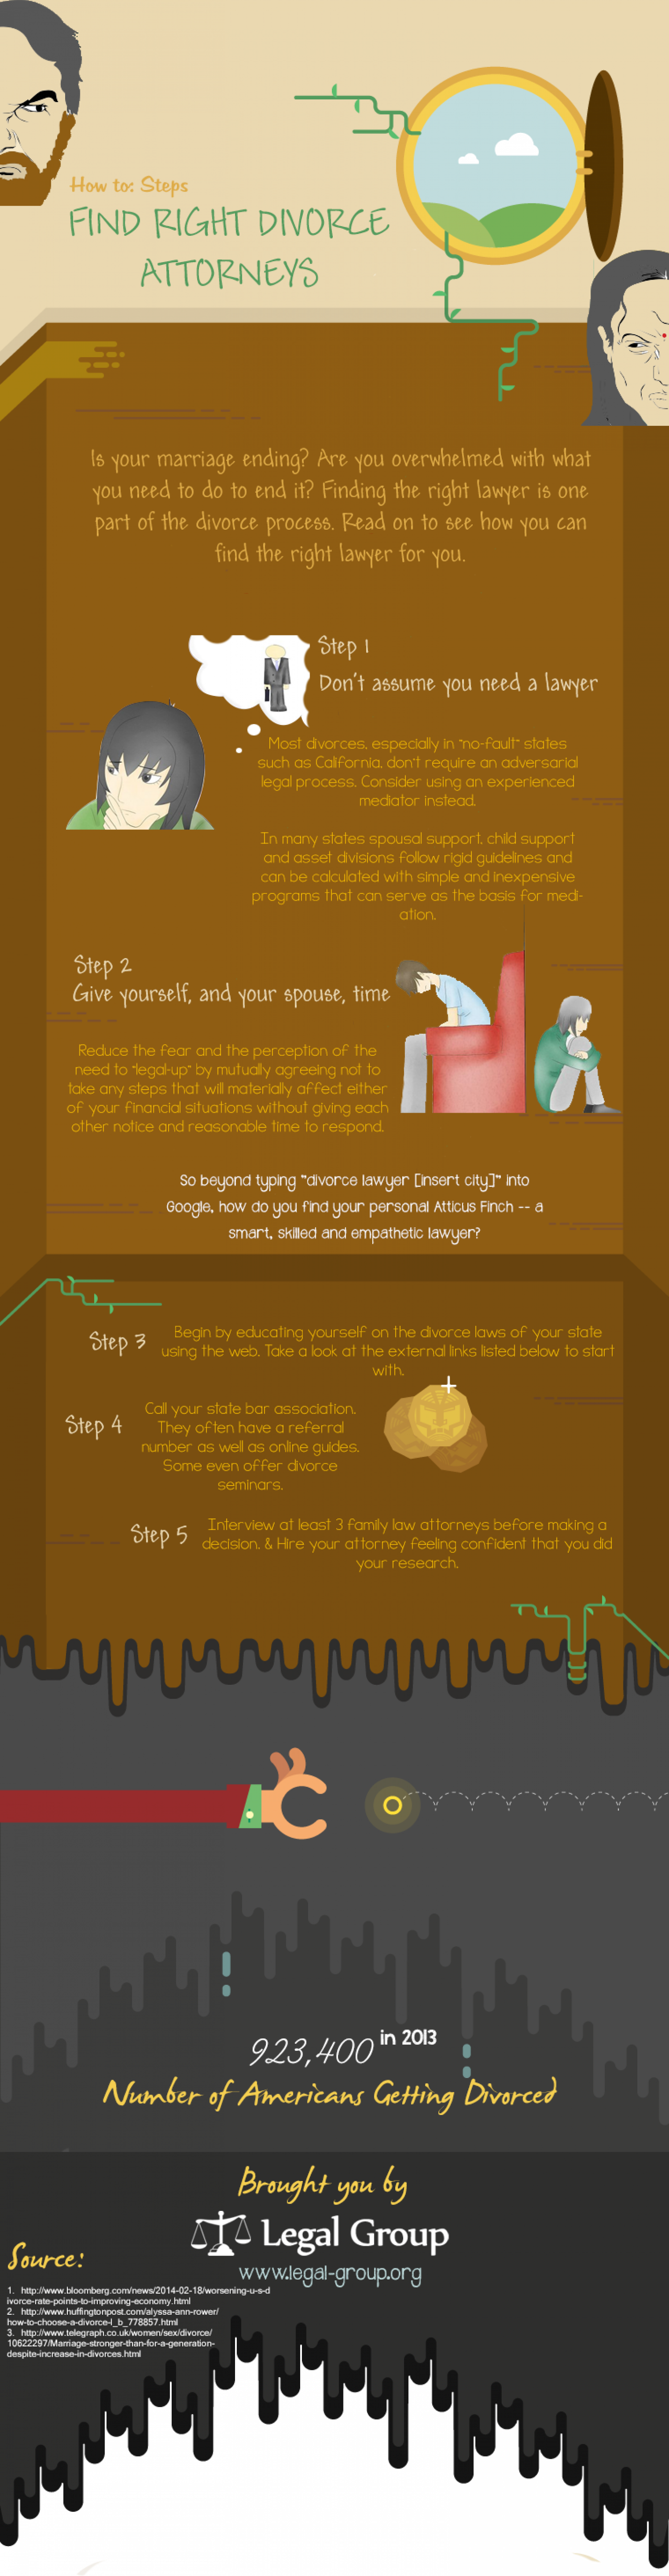 How To Find Right Divorce Attorneys [infographic]